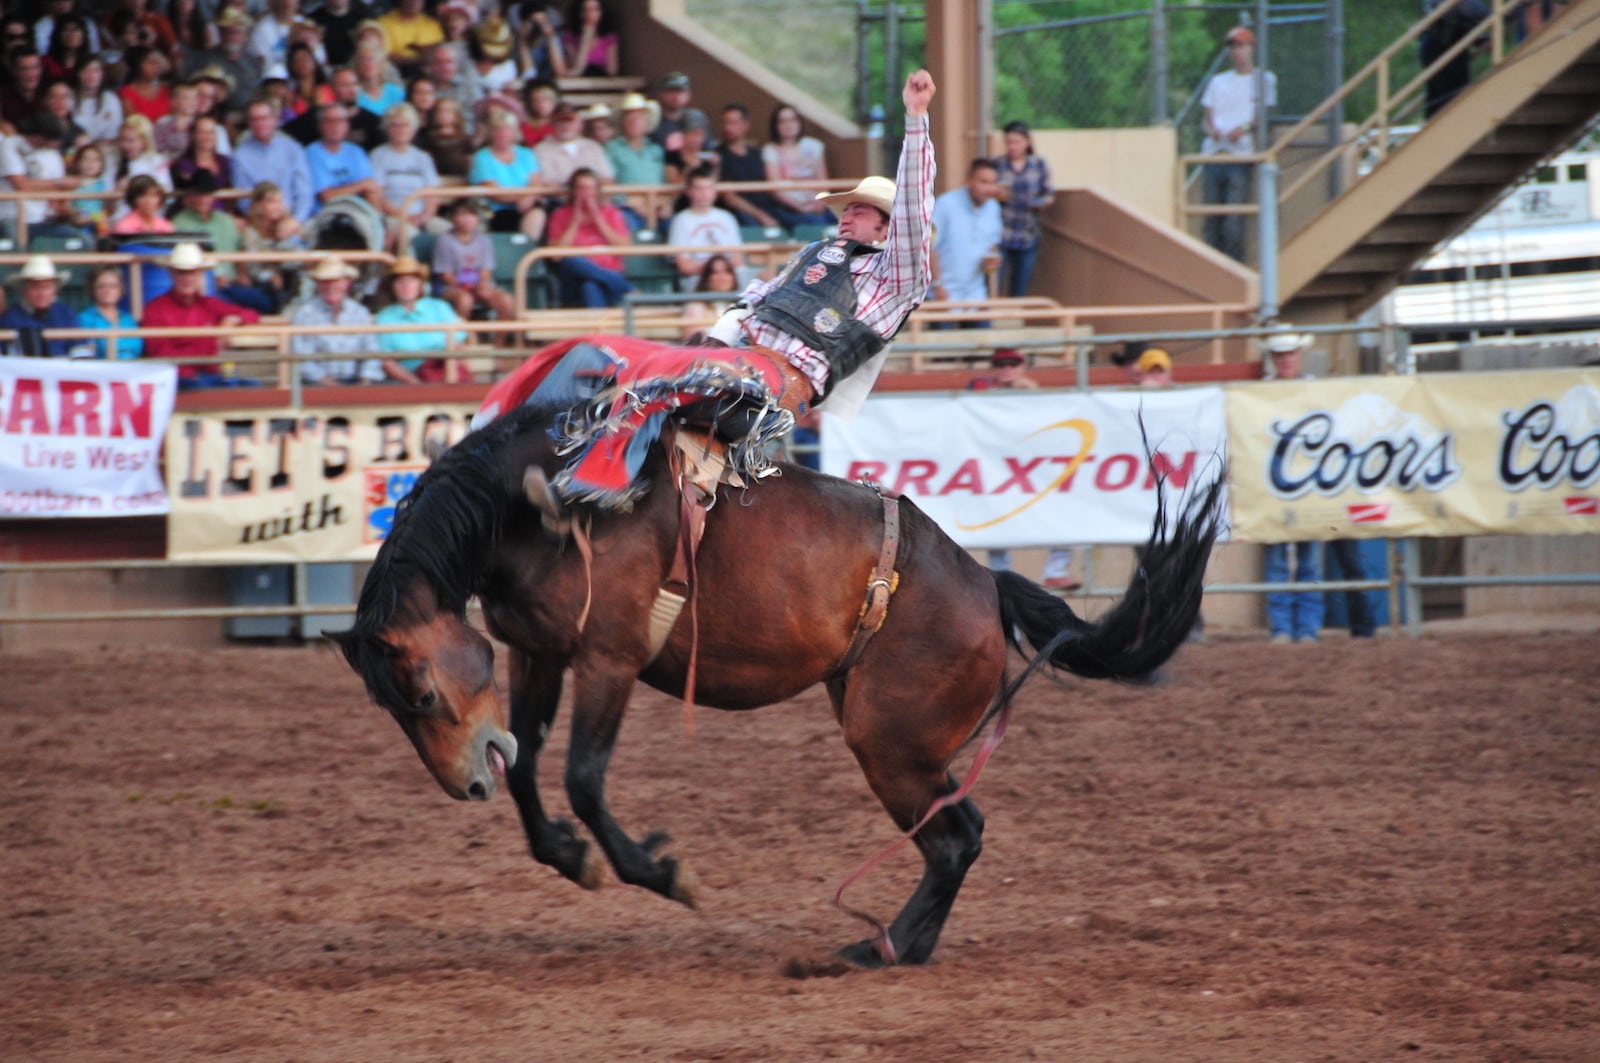 Image of a rider on a horse at Pikes Peak or Bust Rodeo in Colorado Springs